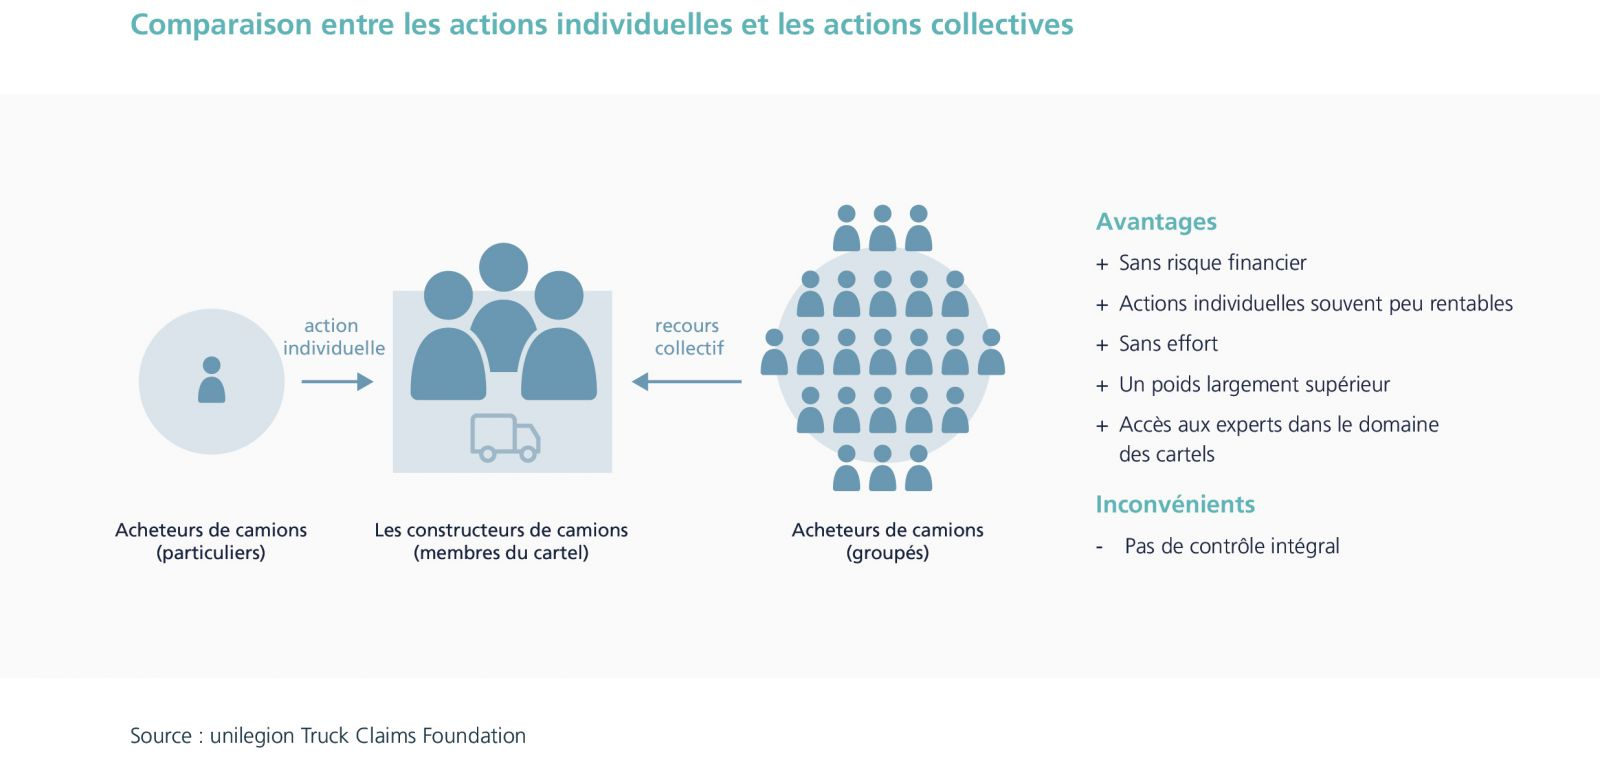 actions collectives unilegion